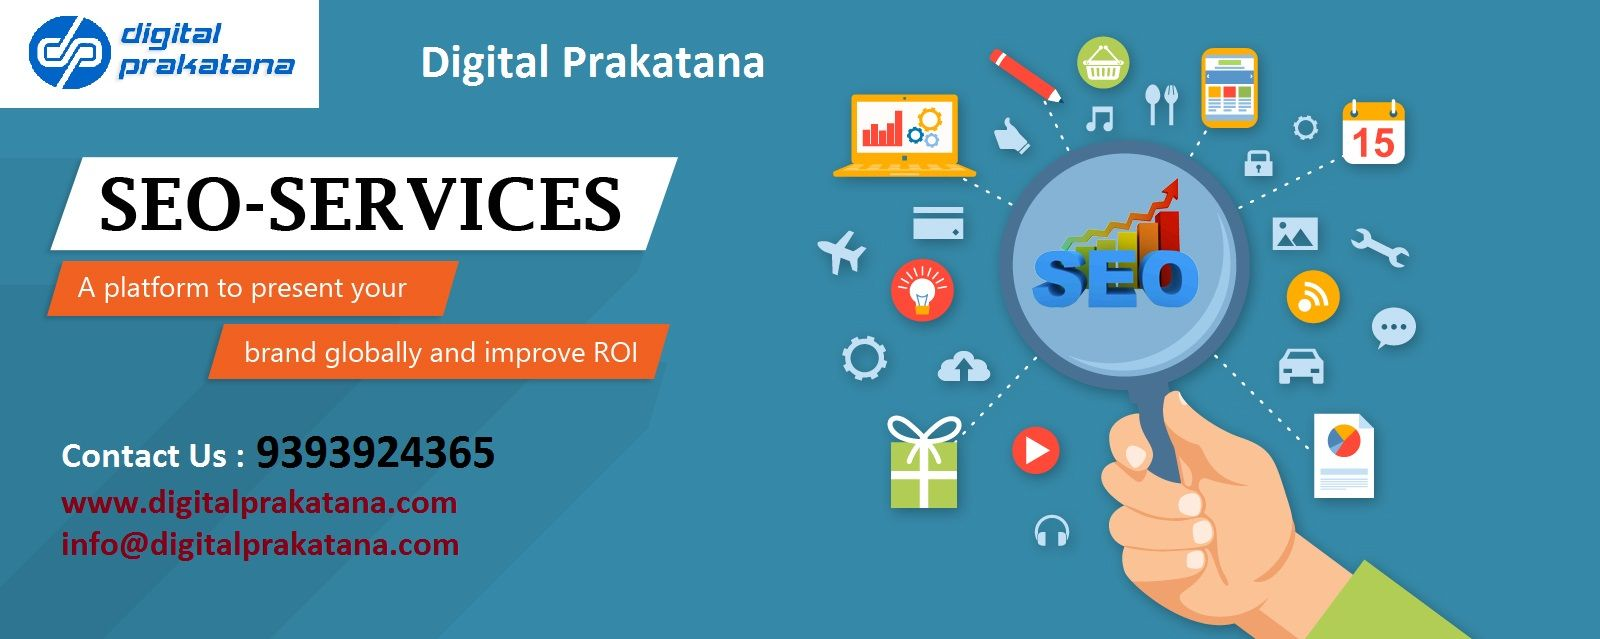 Offering Complete Online Marketing Services For Businesses Of All Sizes In Hyderabad Providi Seo Services Seo Services Company Best Seo Services